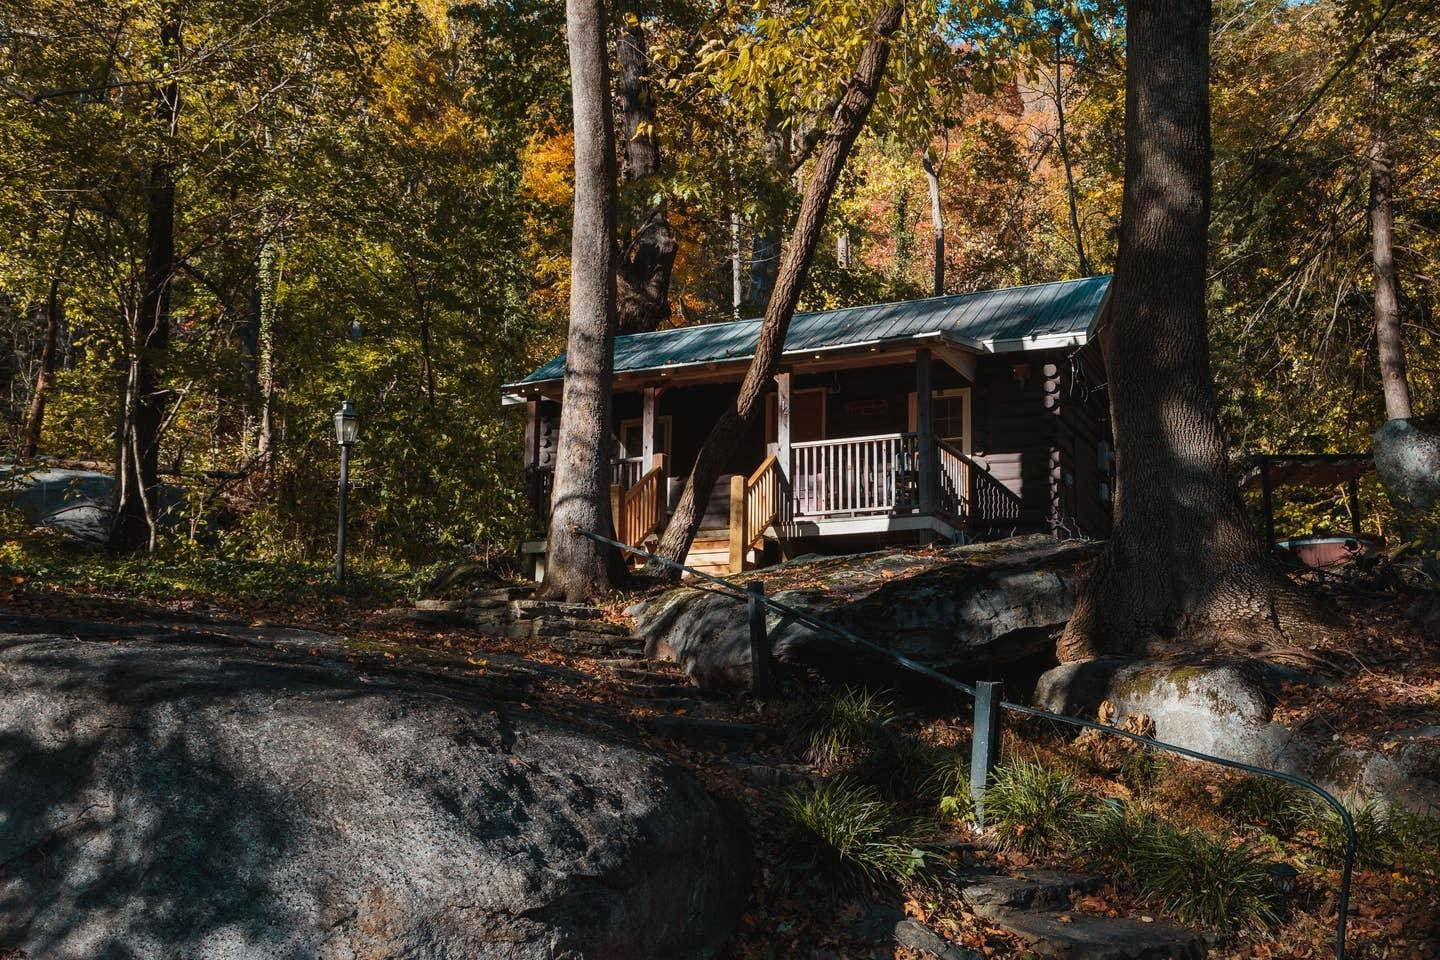 Welcome to Cabin on the Rocks!